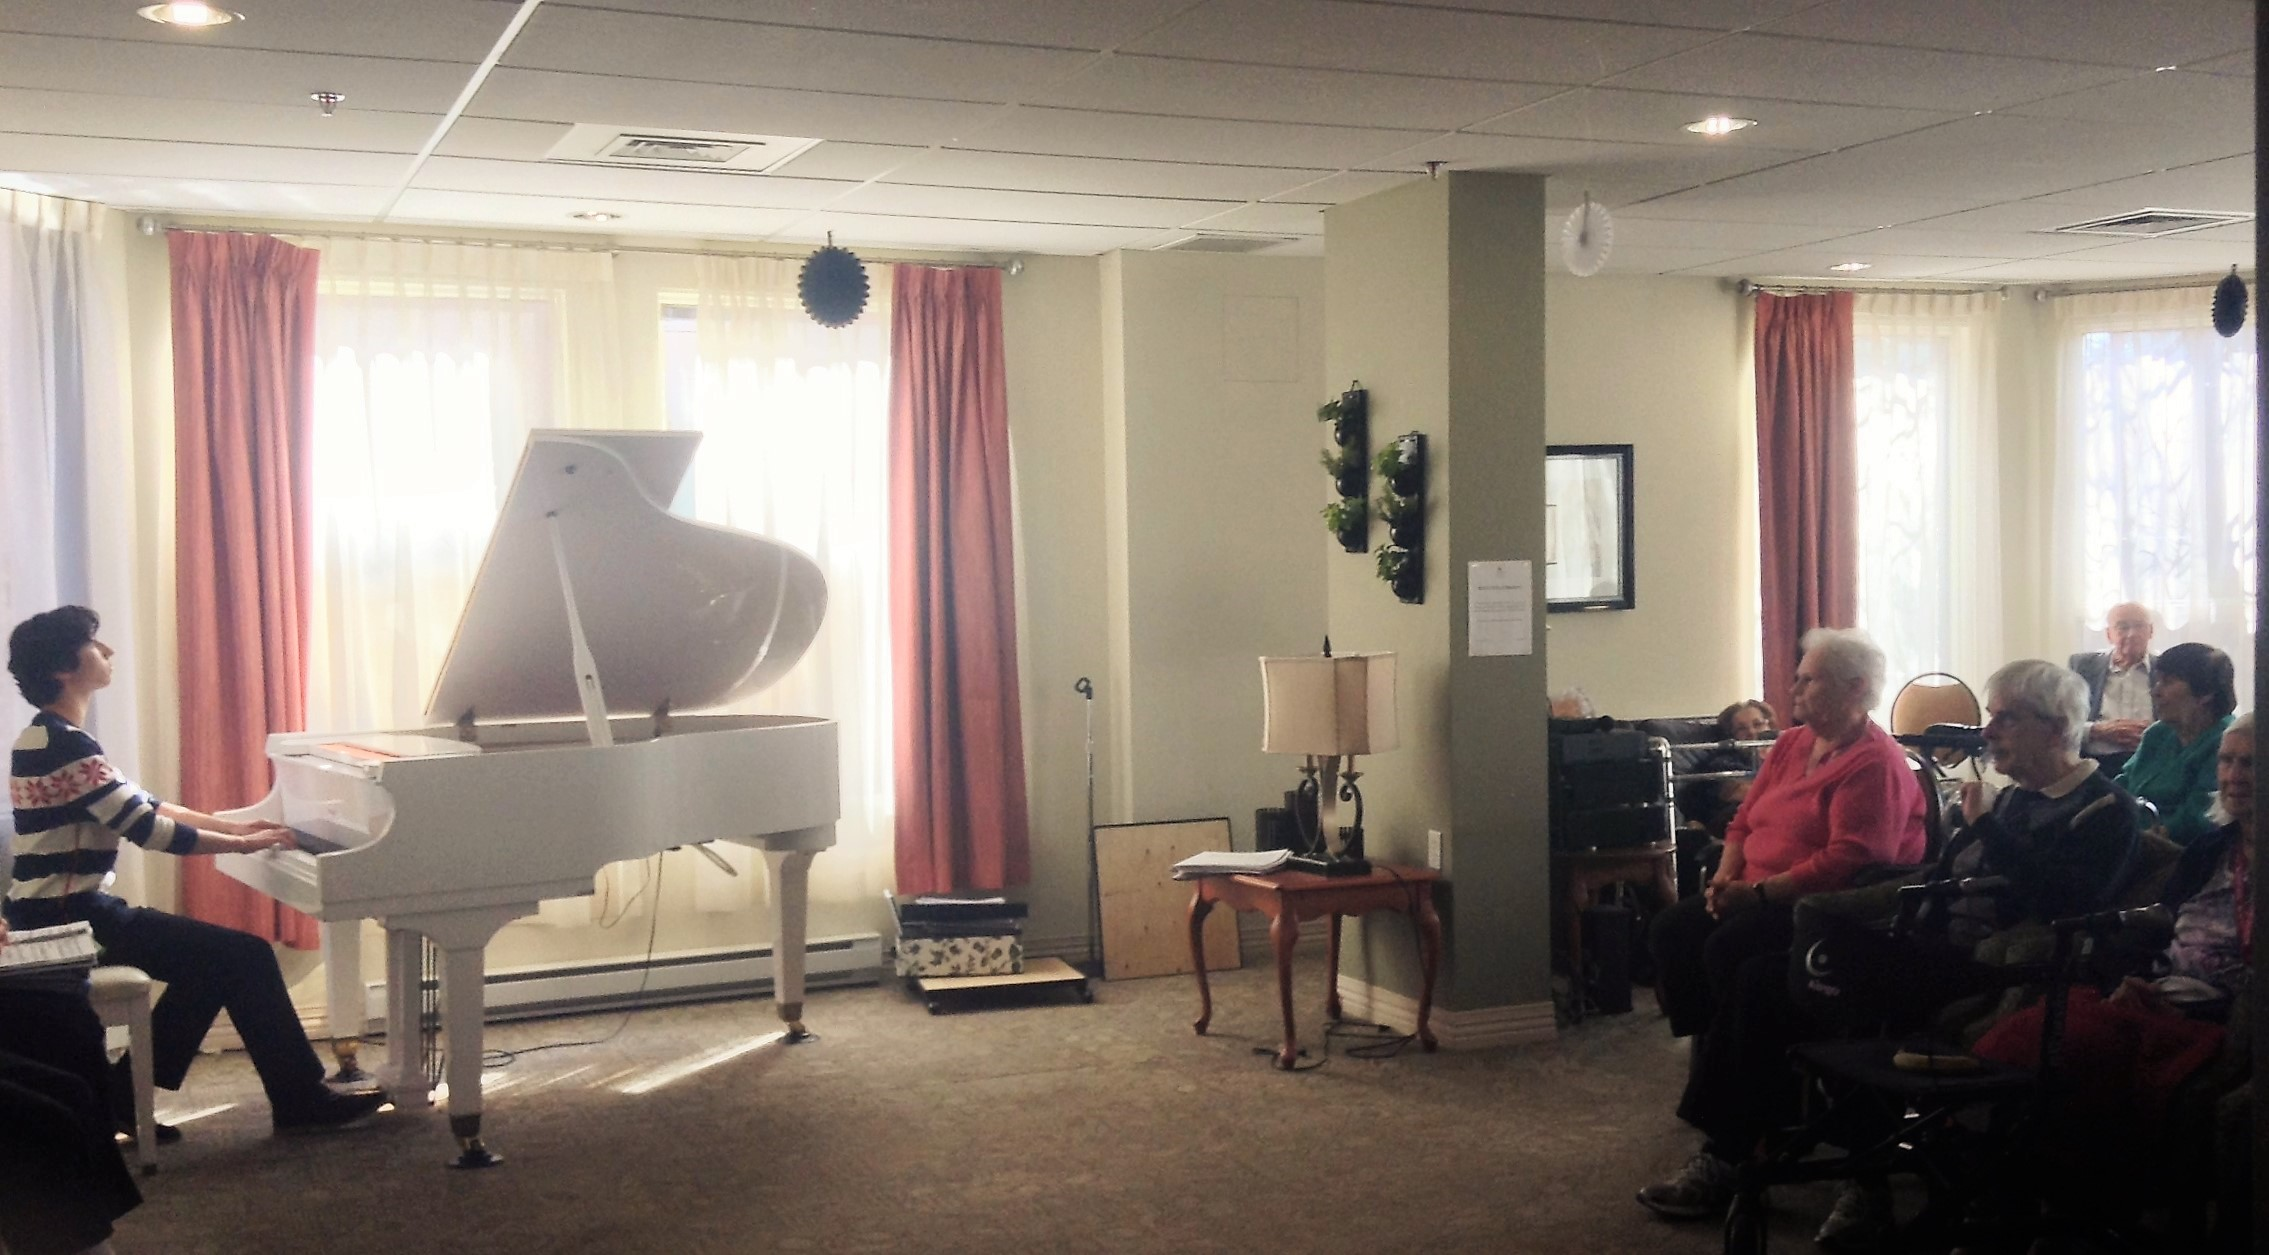 Zachary Lagha in concert at WillowDale Senior Residence, Montreal